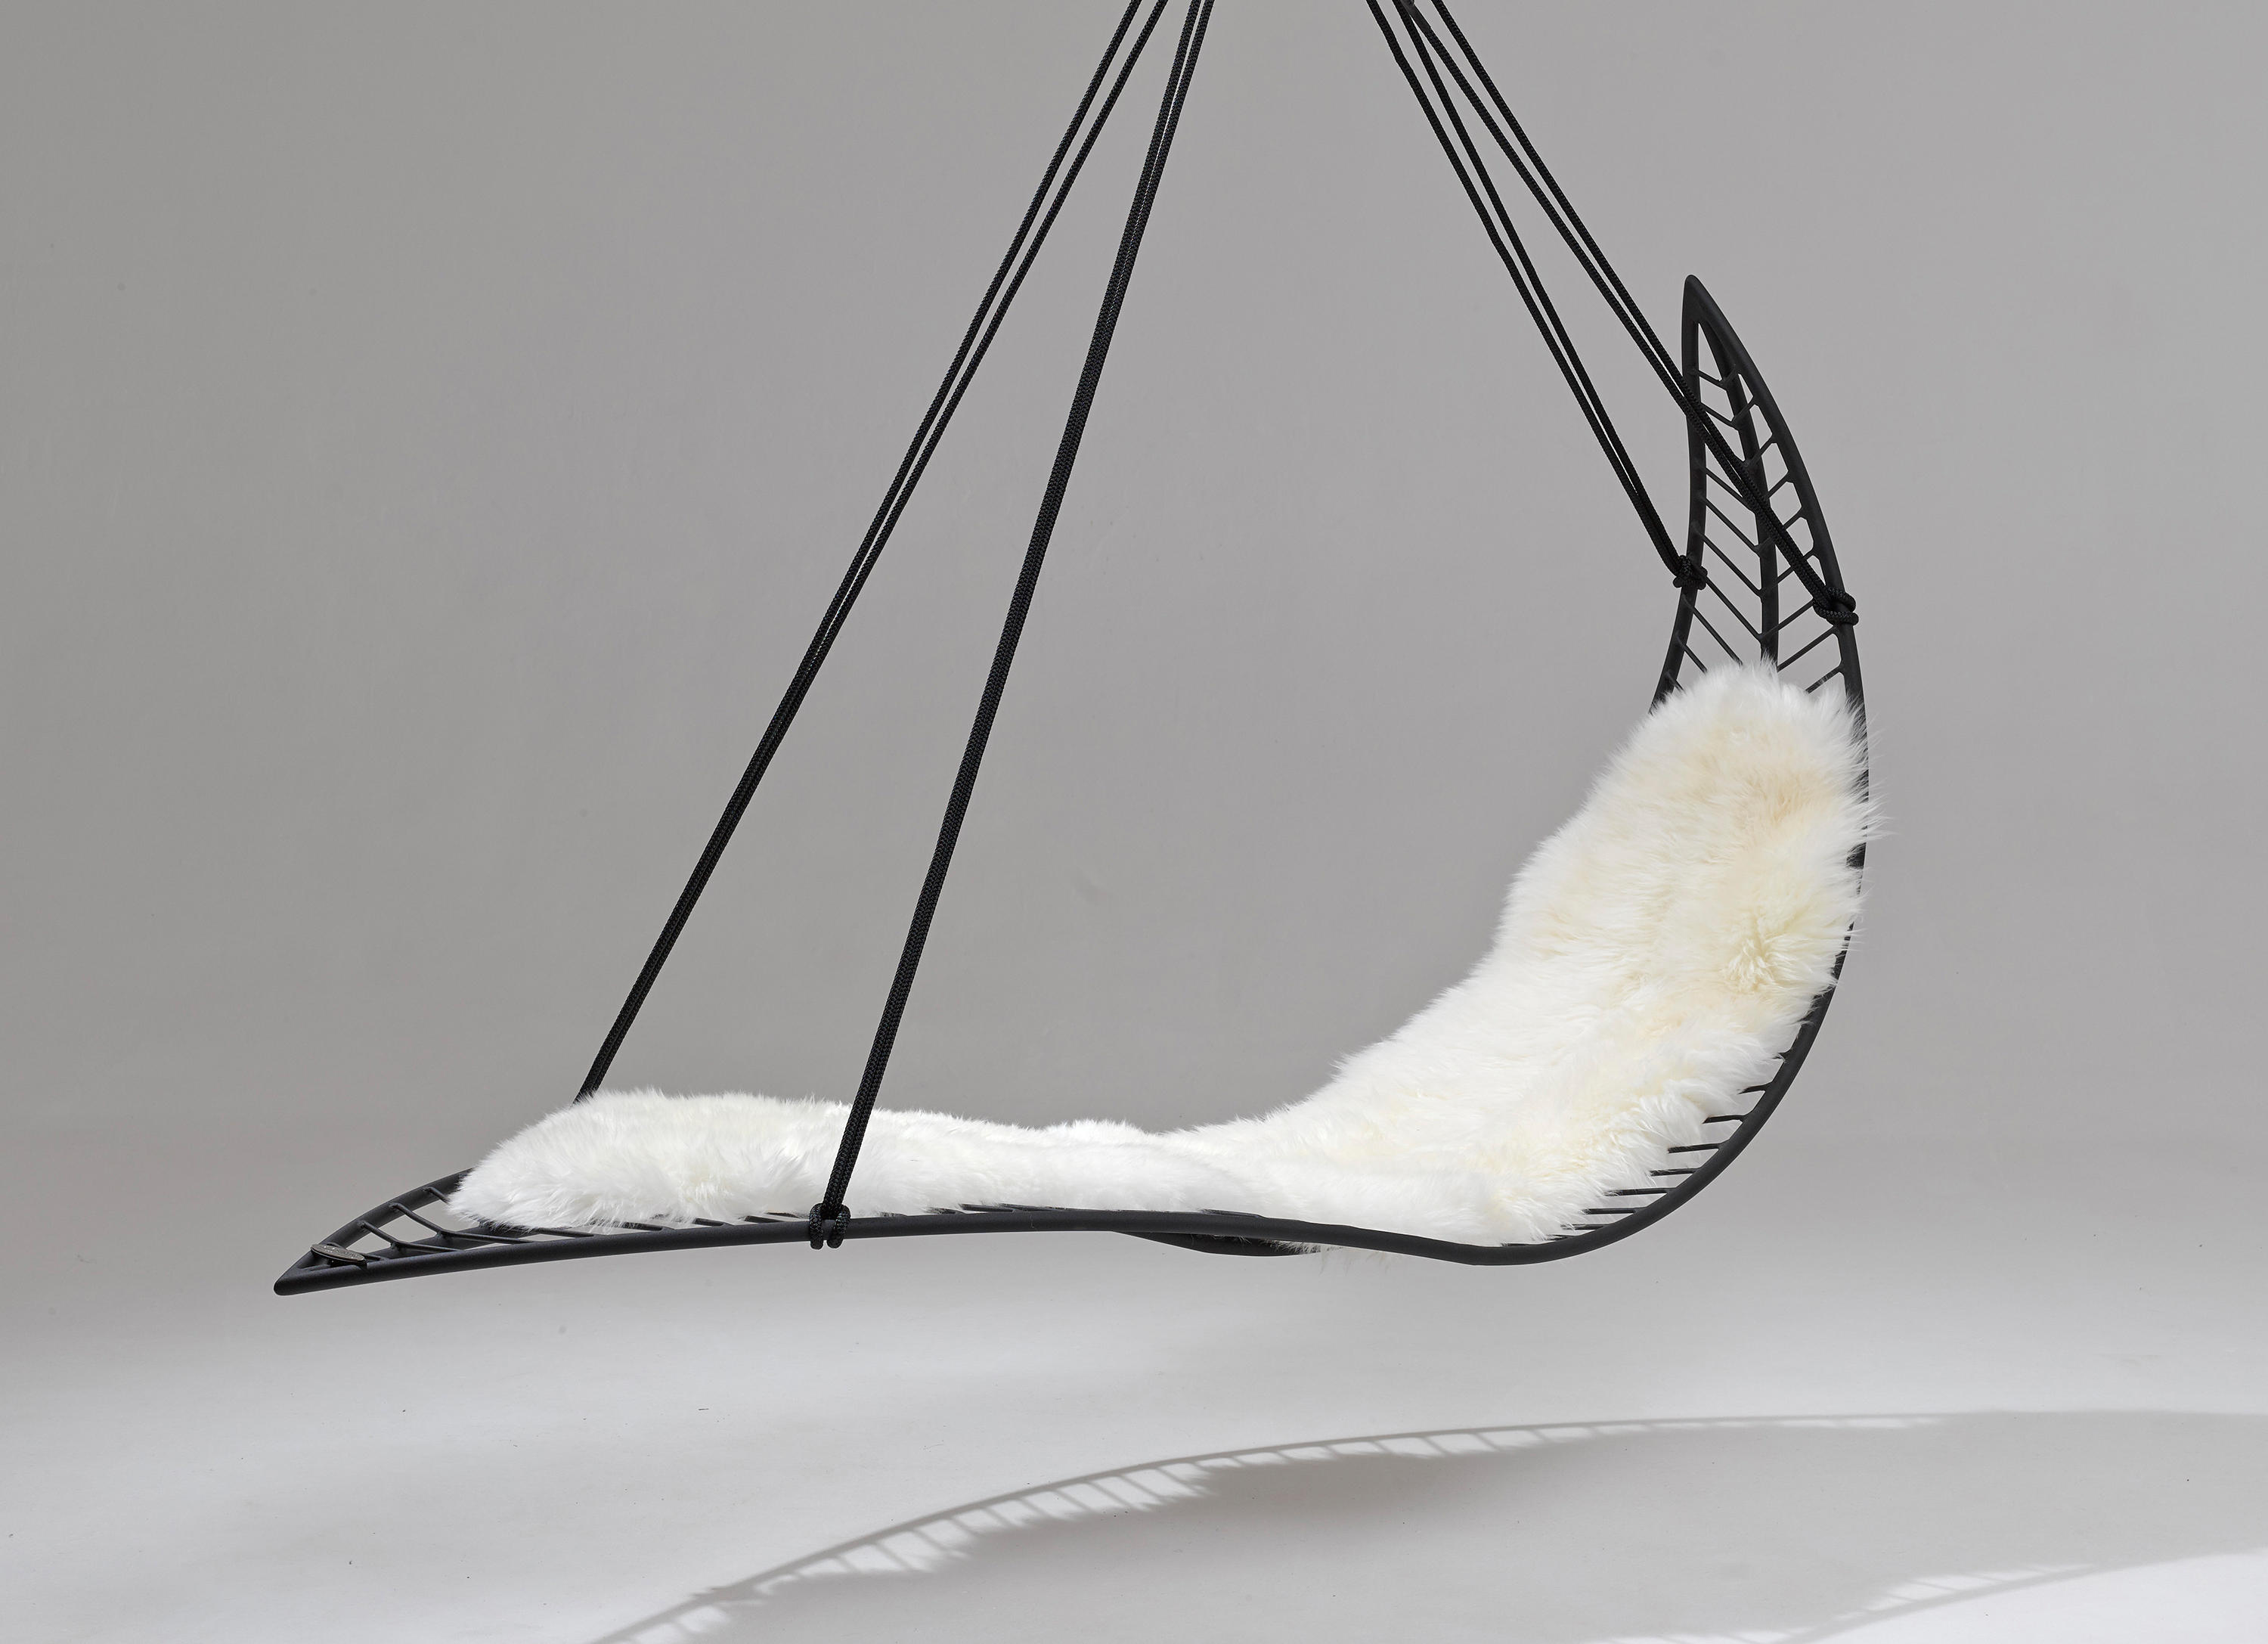 swing seat johannesburg desk chair images sheepskin cushion cushions from studio stirling